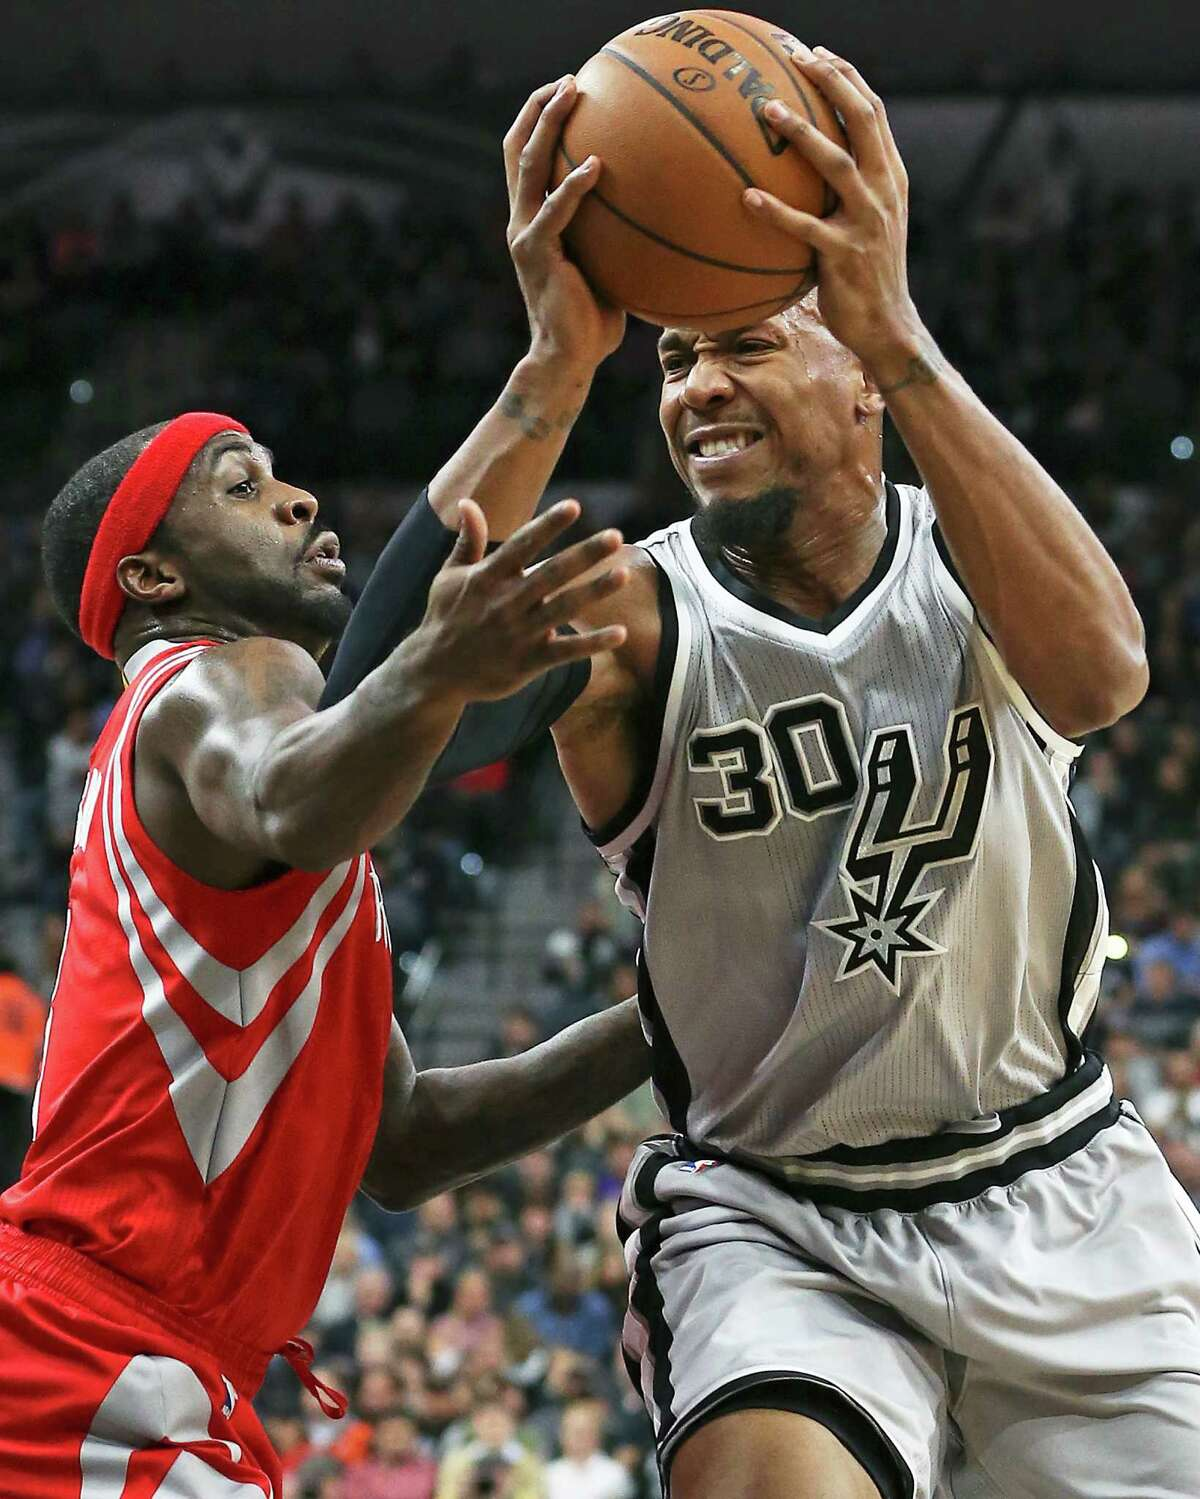 David West starts on his way up against Jason Terry as the Spurs host the Rockets at the AT&T Center on Jan. 2, 2016.